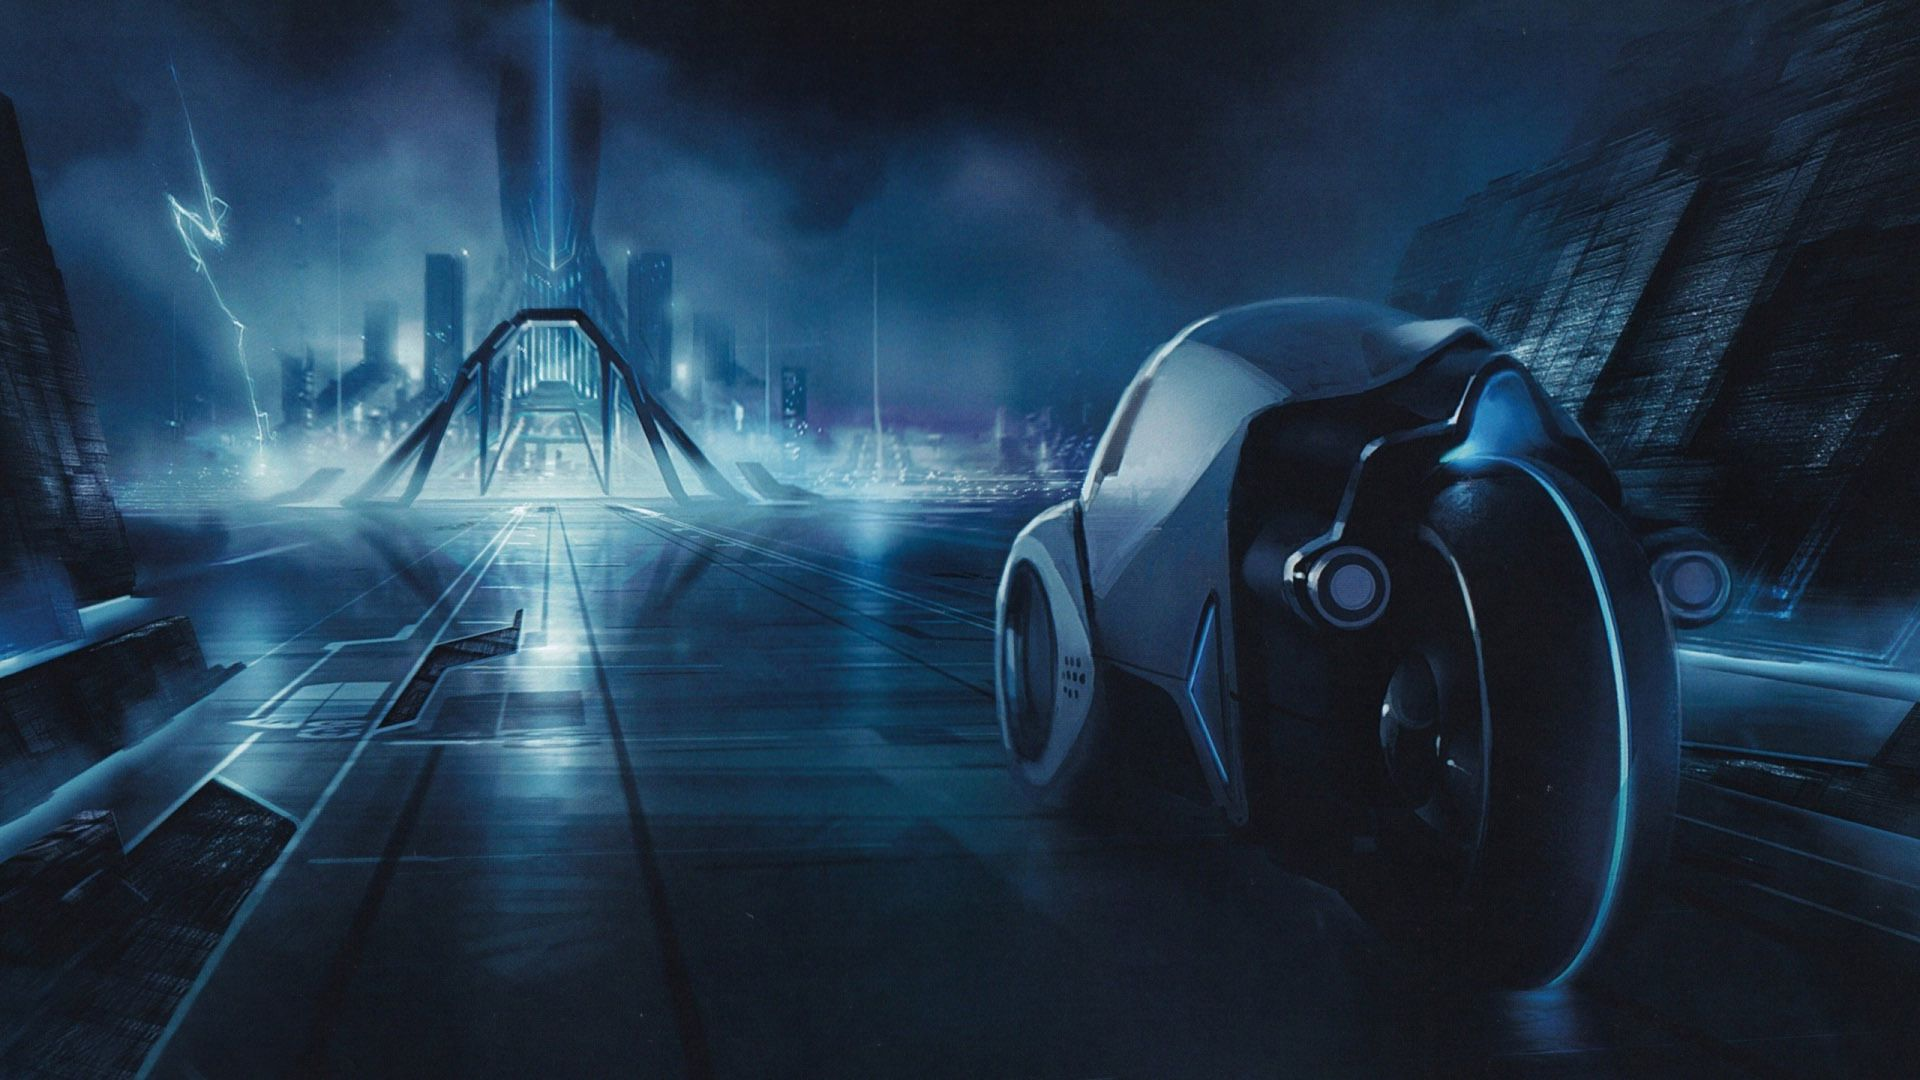 Wallpaper Collection 37 Best Free Hd Ipad Pro 12 9 Wallpaper Background To Download Pc M In 2020 Wallpaper Backgrounds Tron Legacy Wallpaper